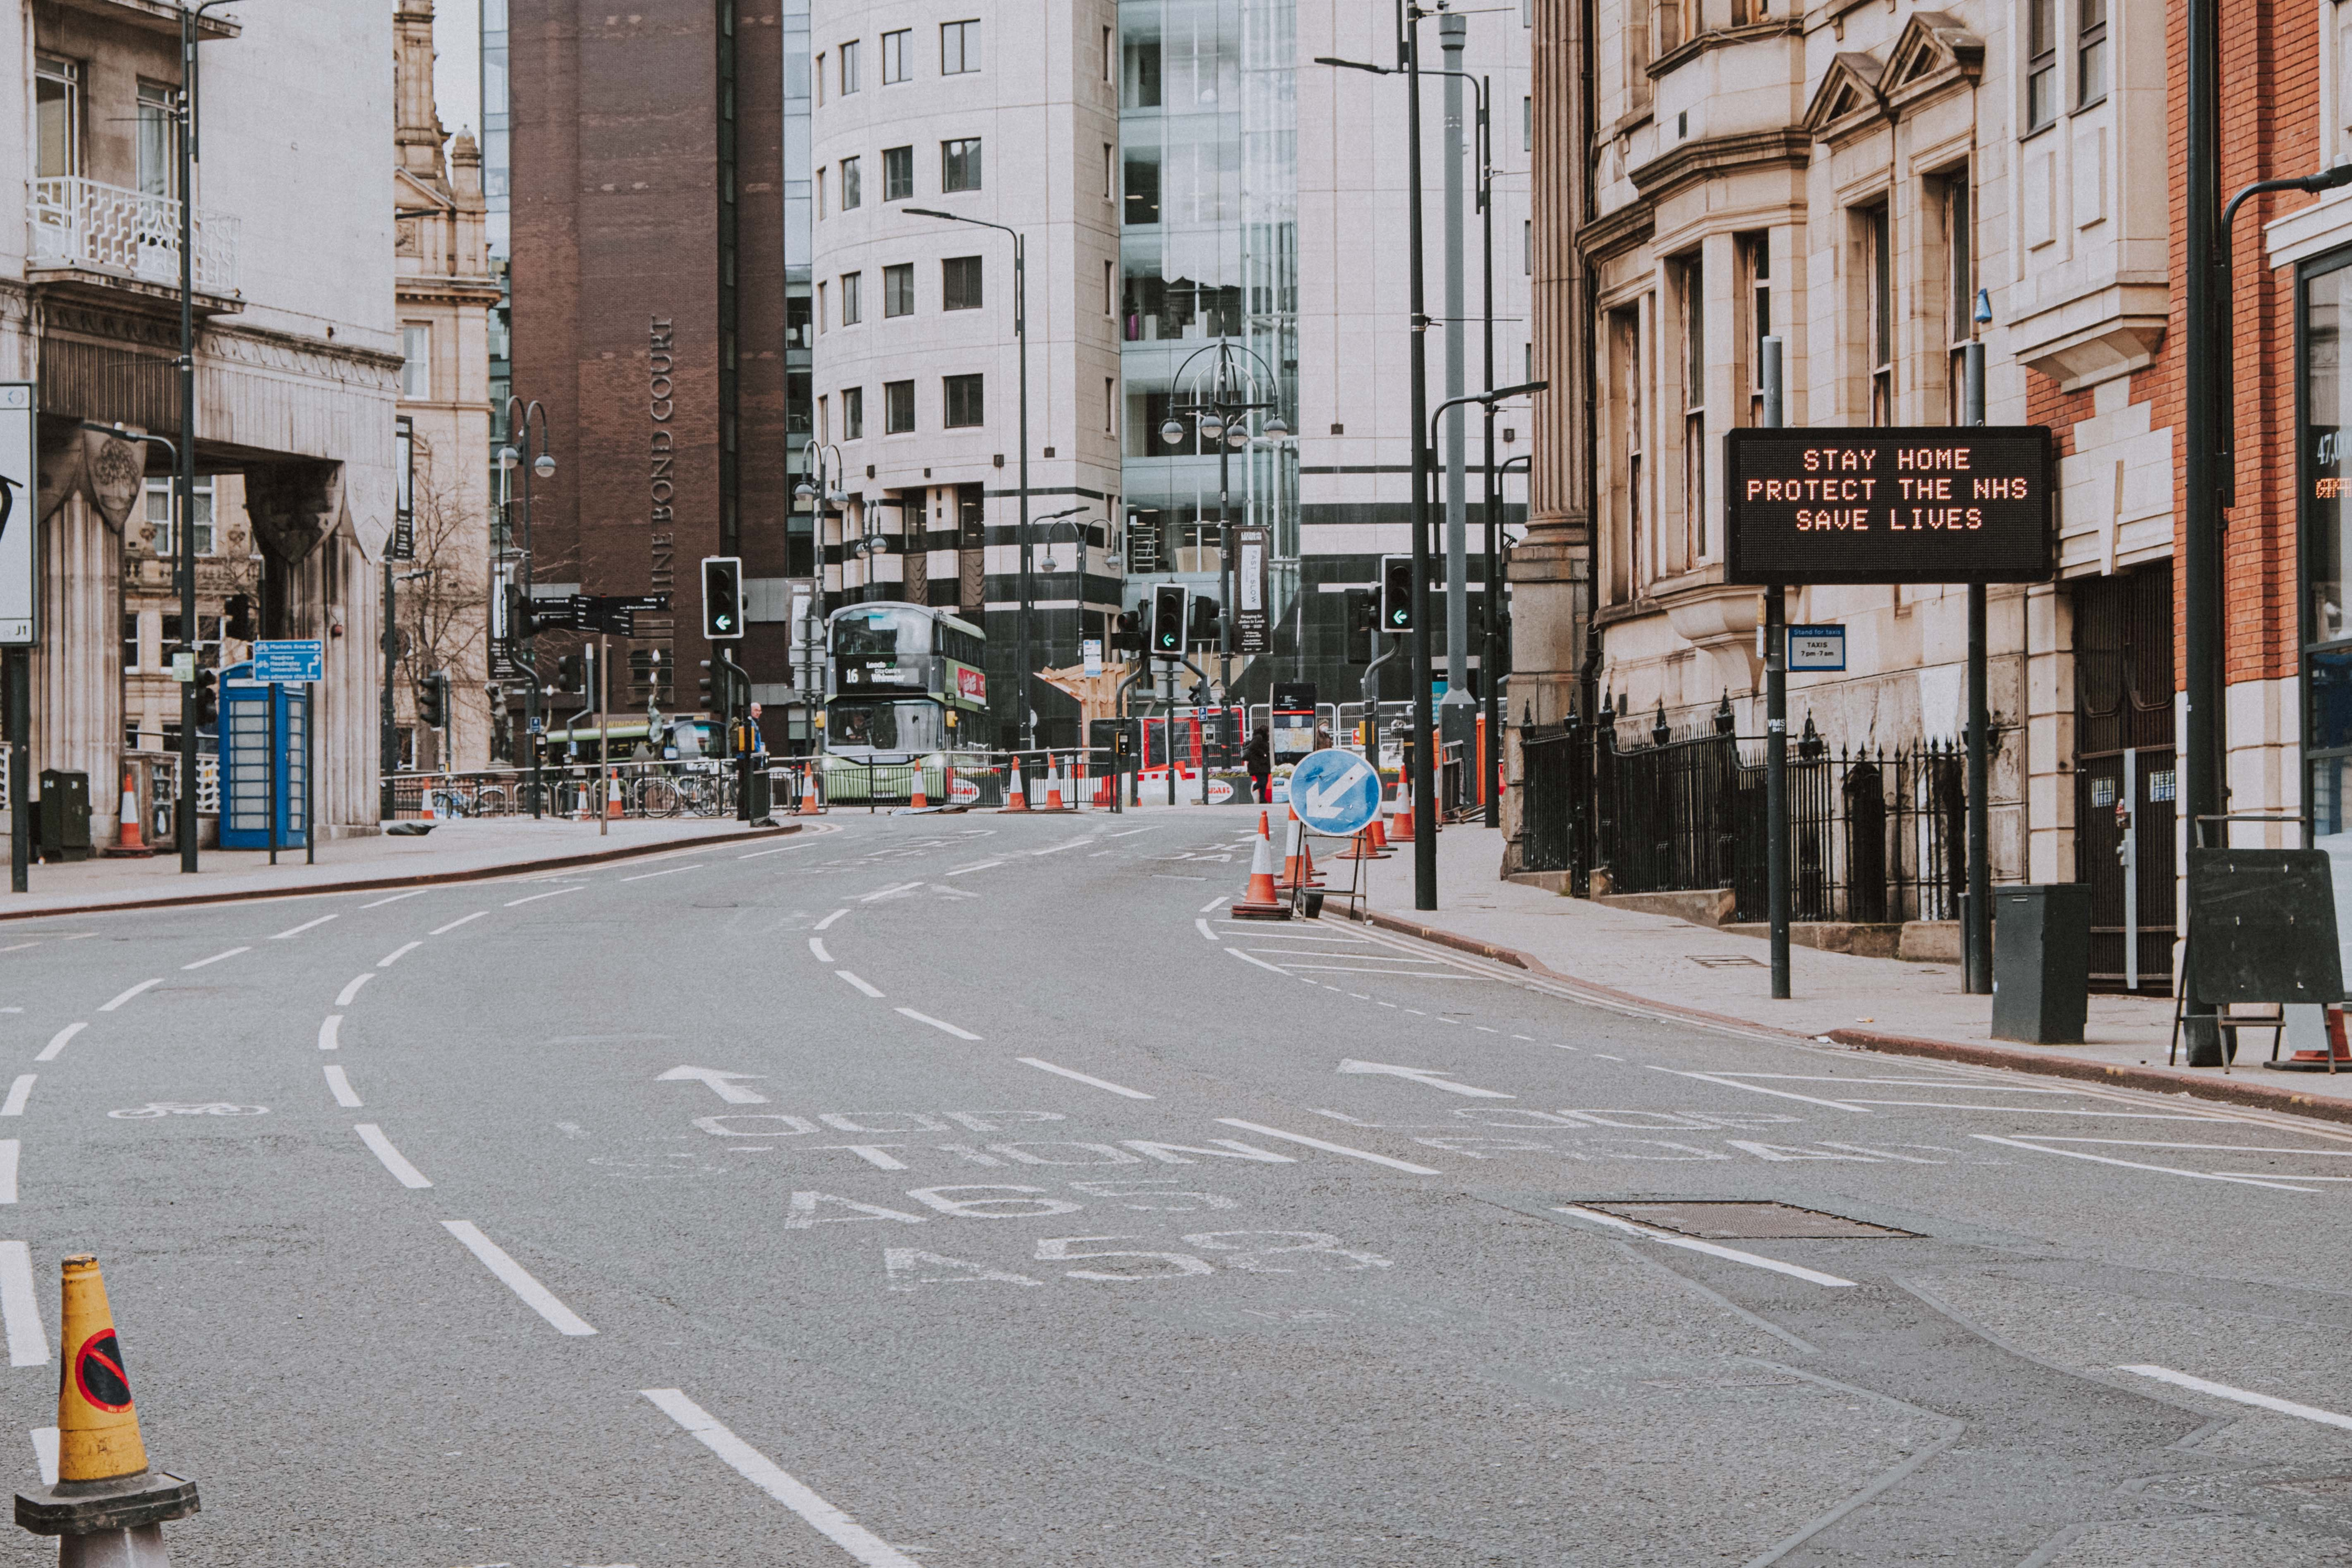 Empty city street during Covid-19 pandemic